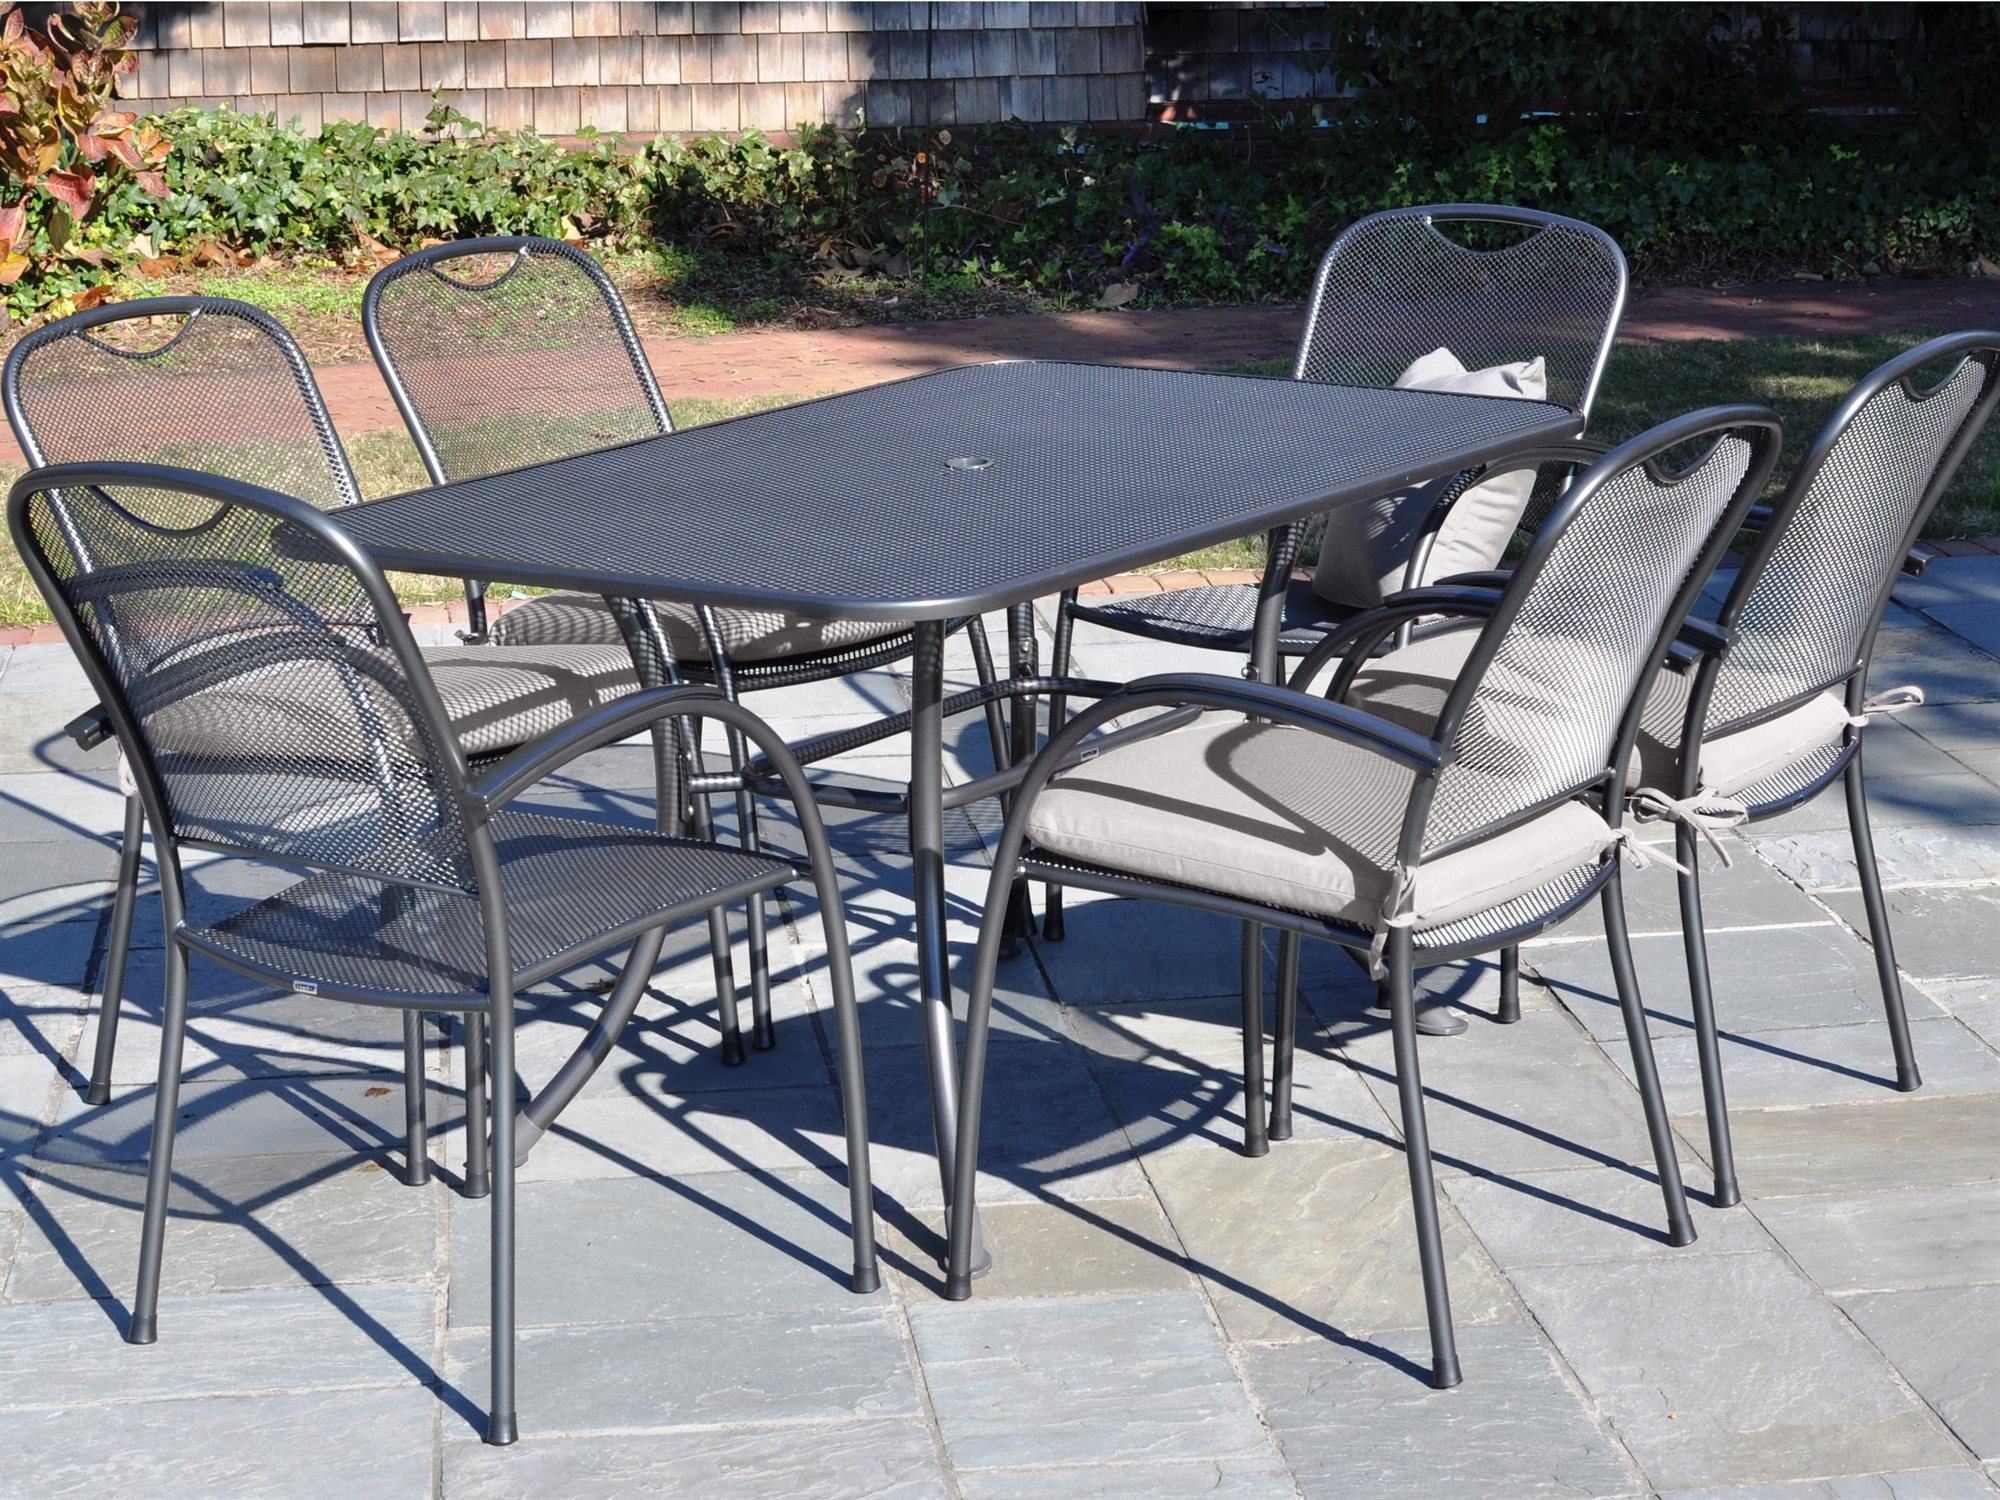 Kettler Monte Carlo Wrought Iron Dining Chair C303202 20